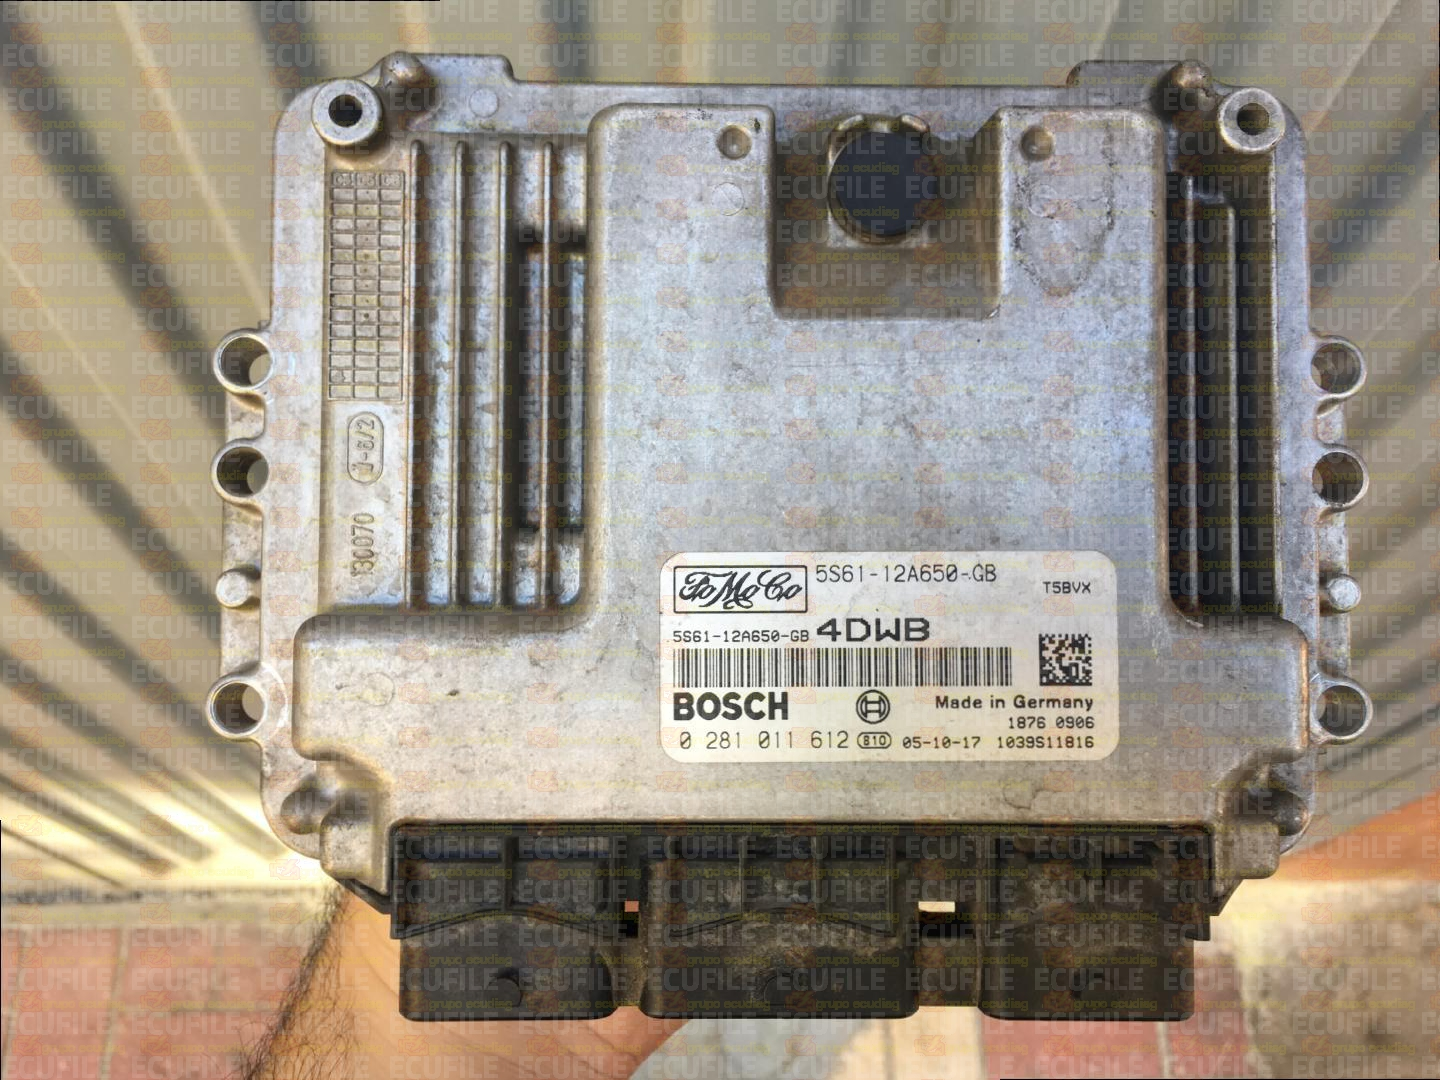 CALCULATEUR FORD FIESTA BOSCH EDC17C10 1.4 TDCI 0281018993 BV21-12A650-ACC